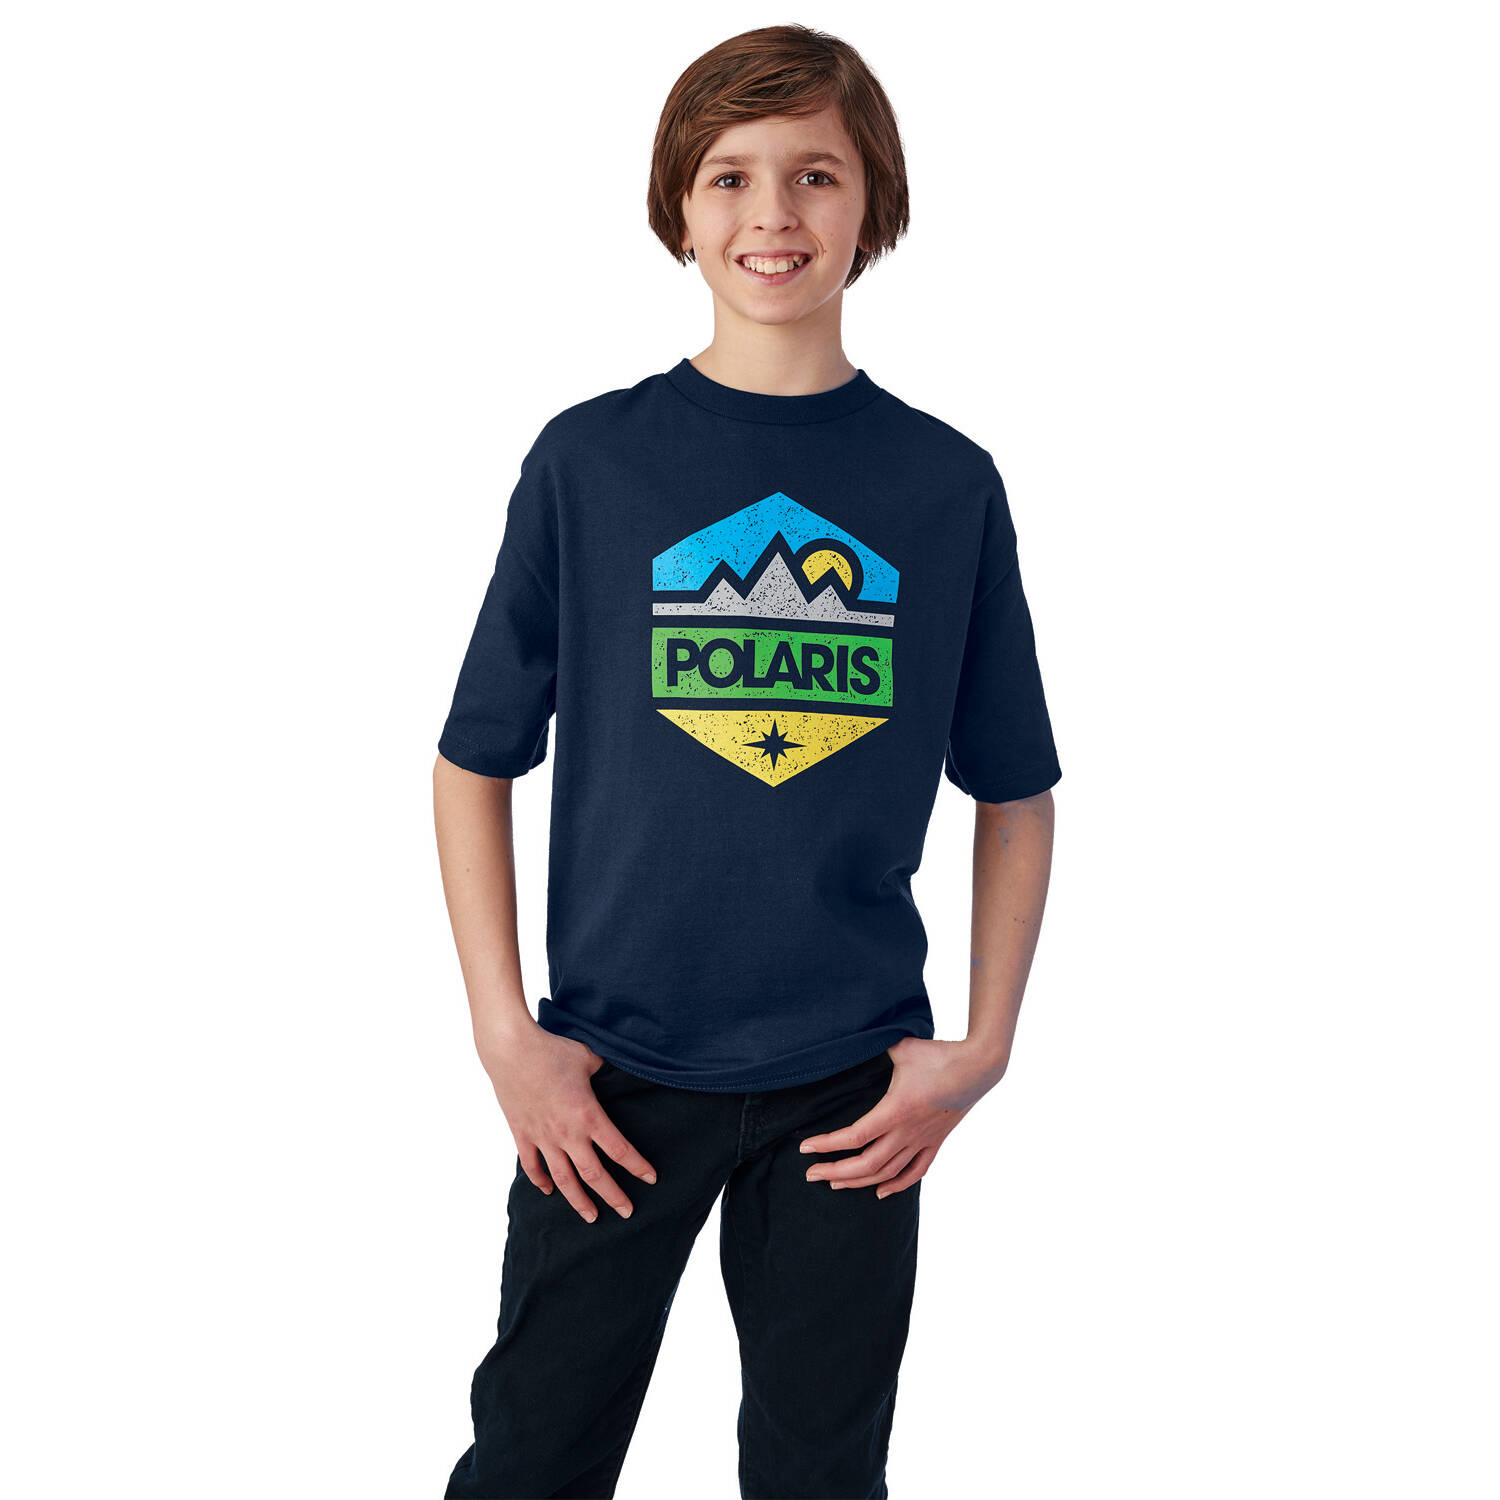 Youth Hex Graphic T-Shirt with Polaris® Logo, Navy